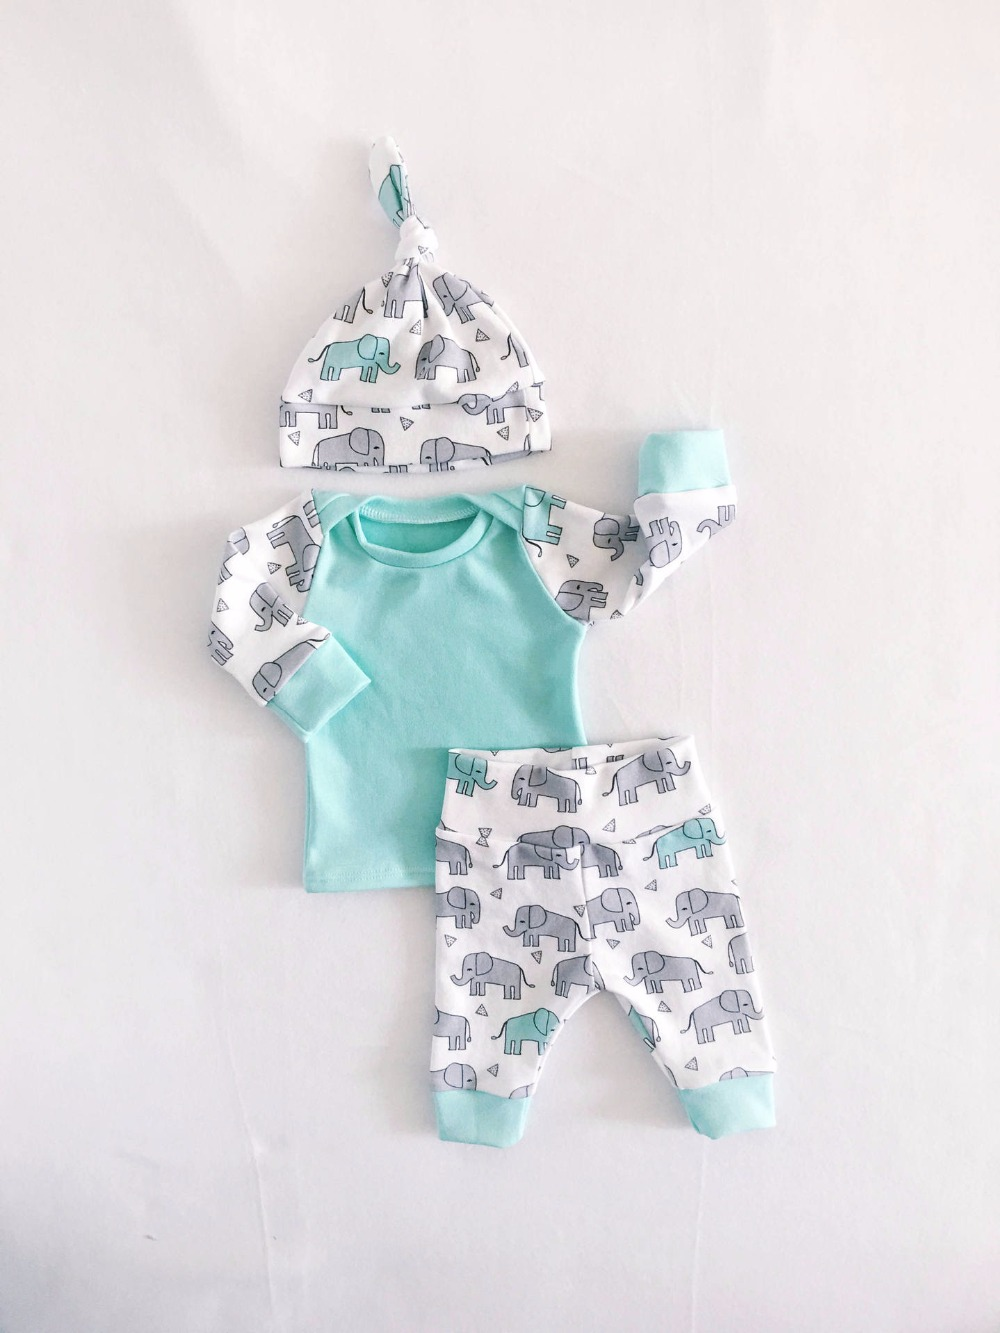 Elephant 2 piece baby cute boy clothing set stuff for newborns baby boy long sleeve Tops tees+caps+trousers baby clothes 1 year